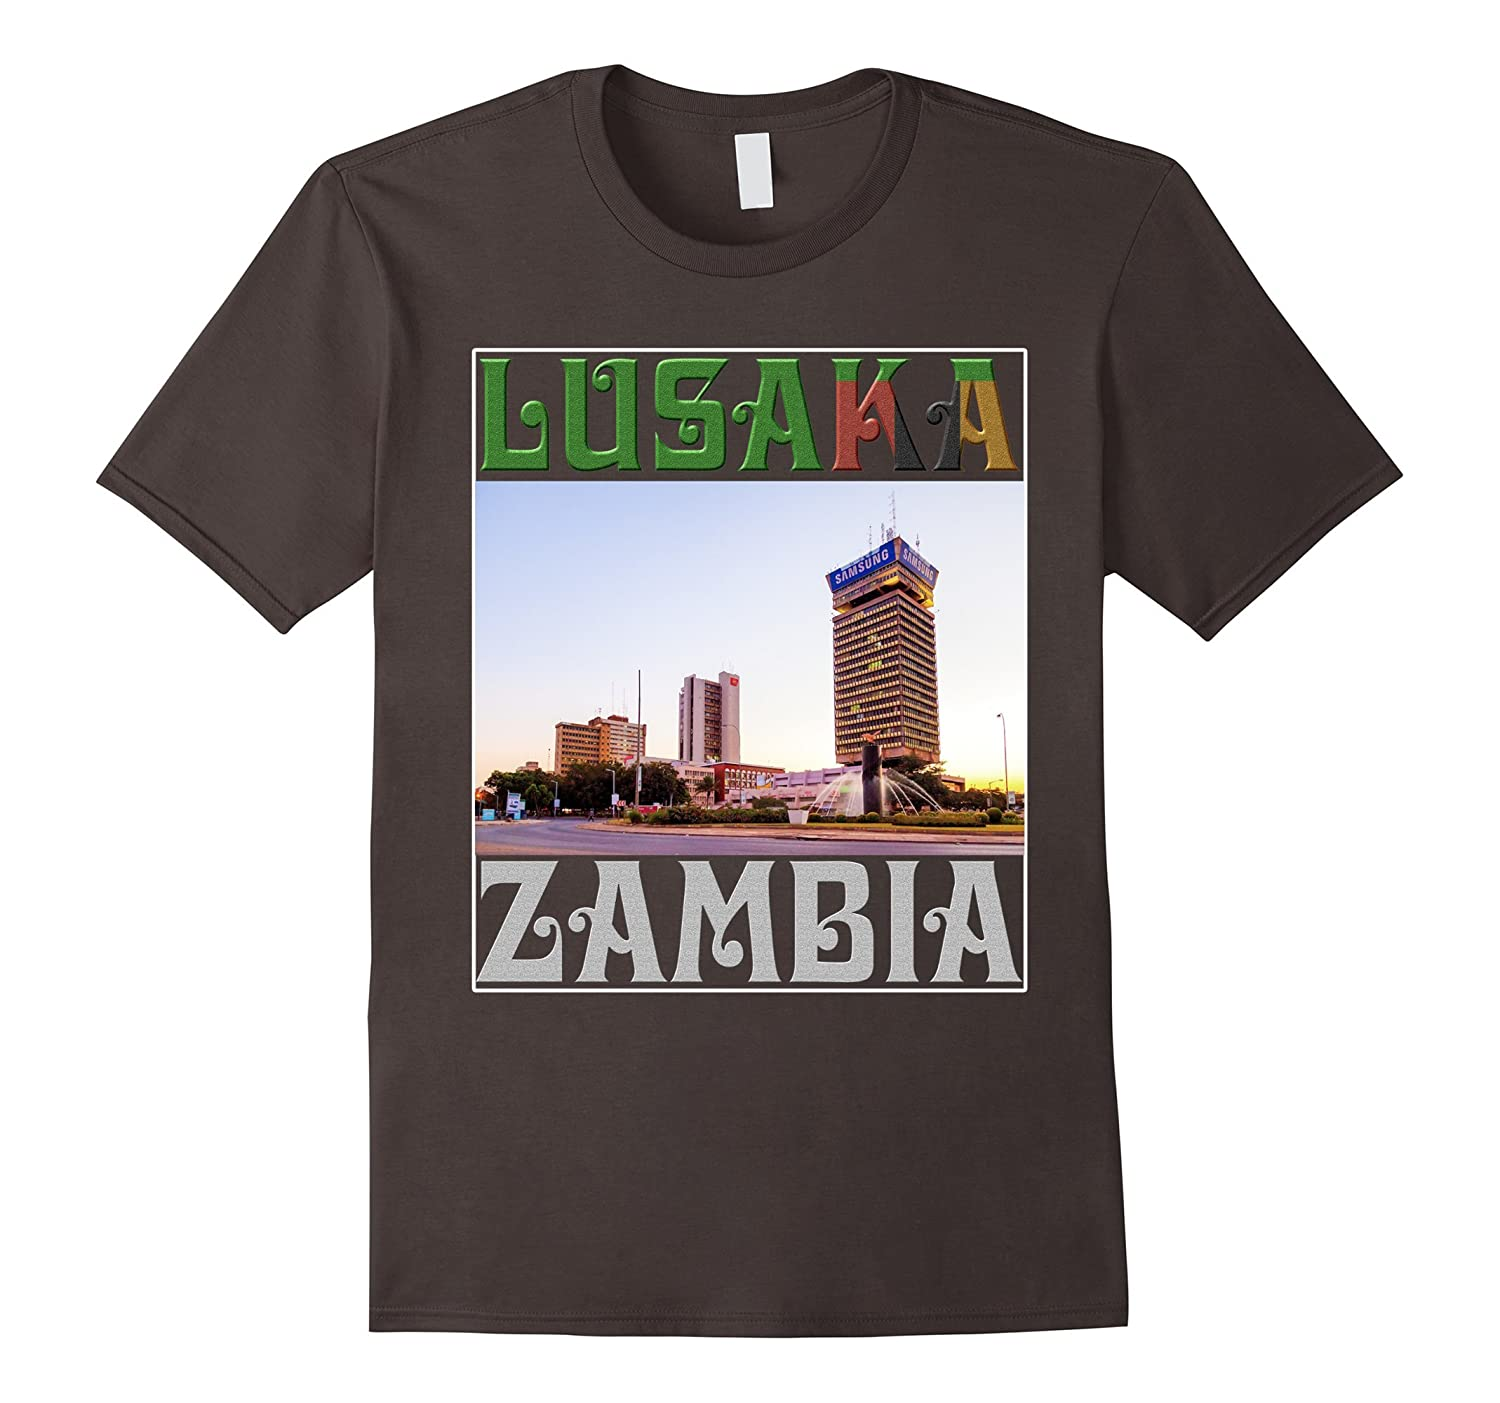 My story begins in Lusaka Zambia Shirts-FL